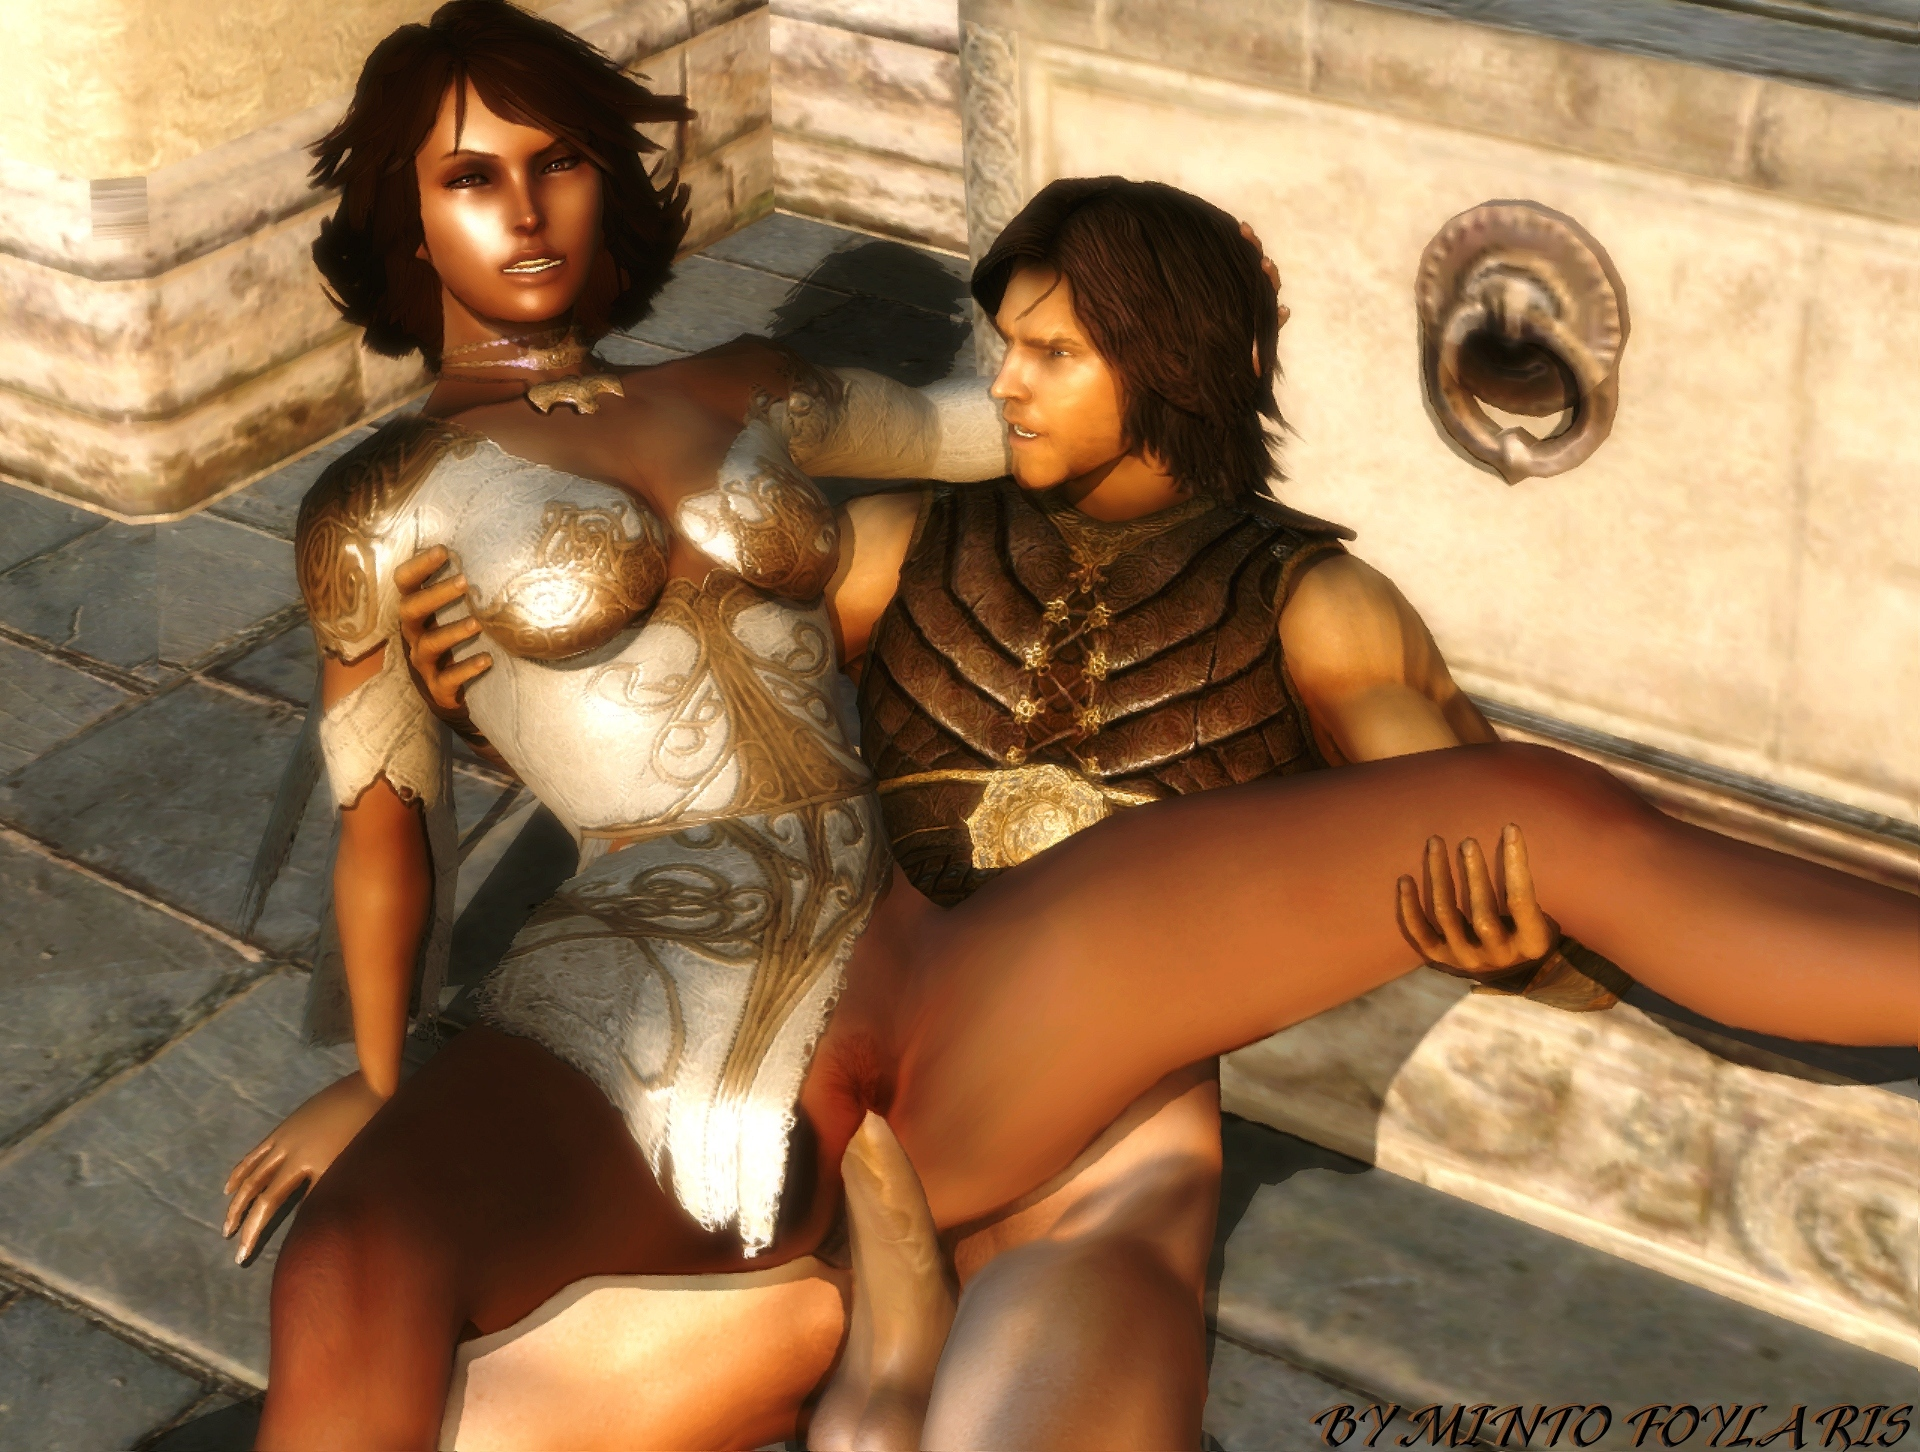 Prince of persia and elika porn fucking xxx comic